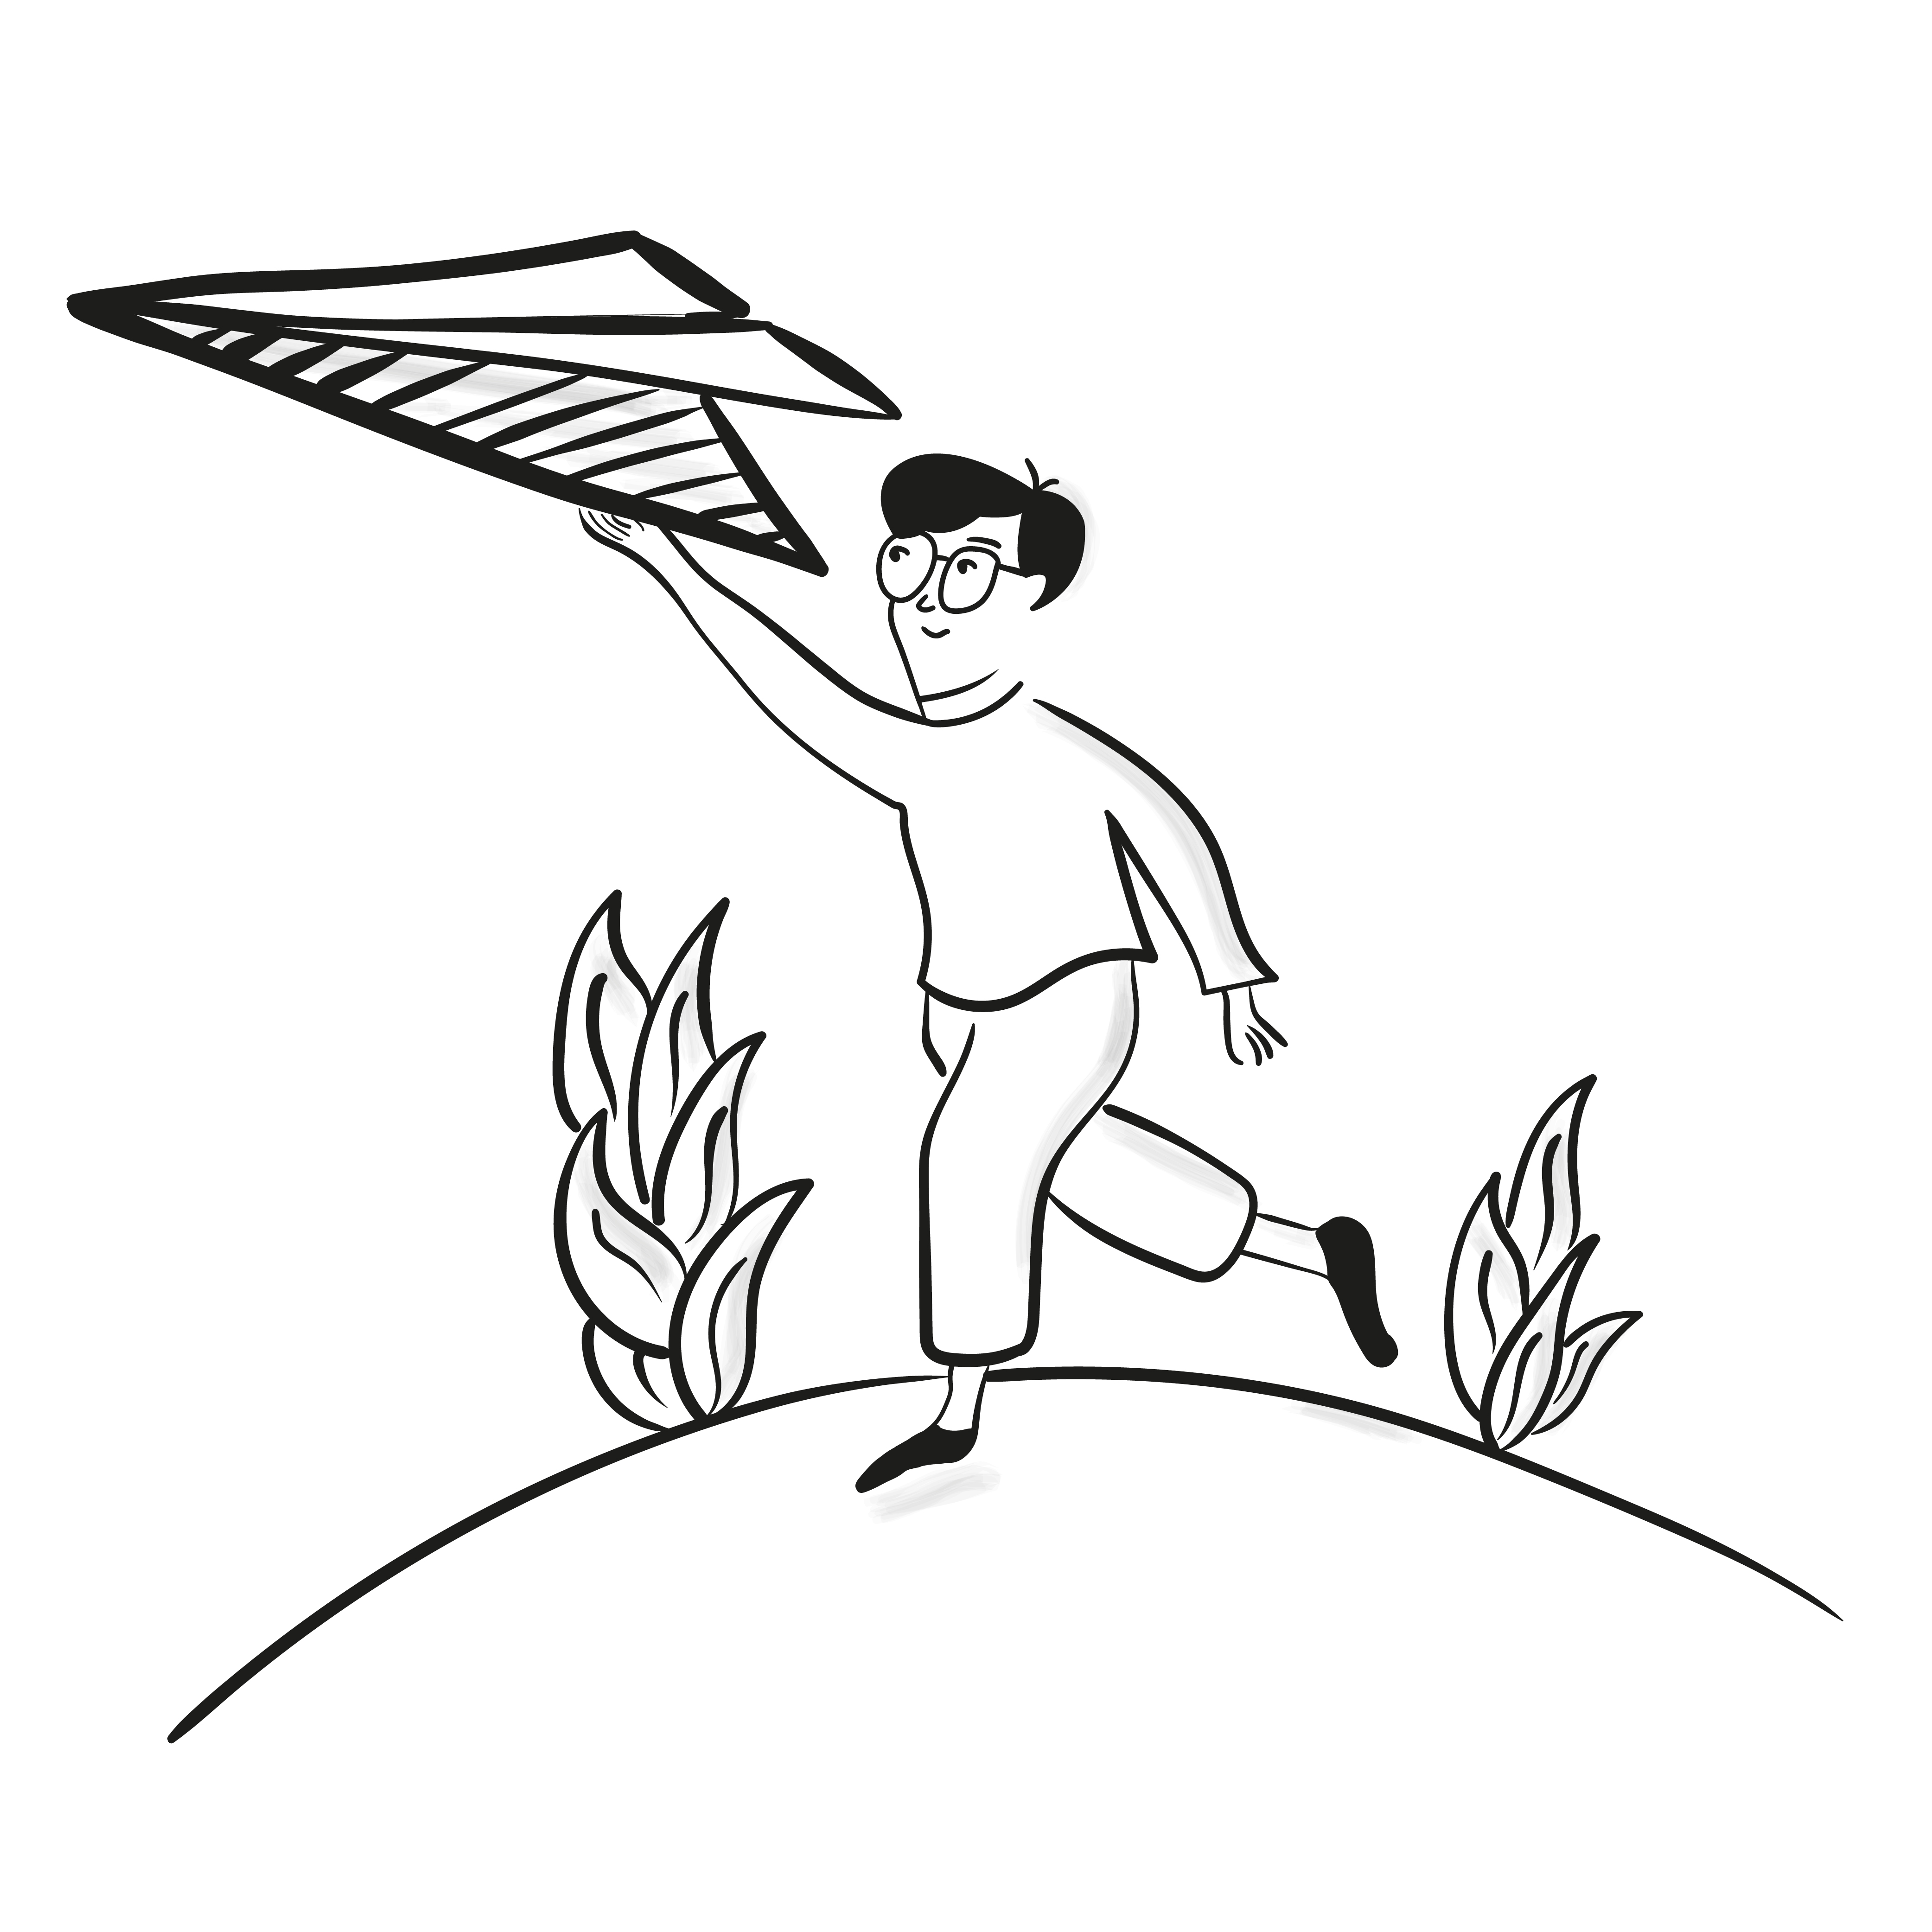 A person running with a large paper airplane over a hill.